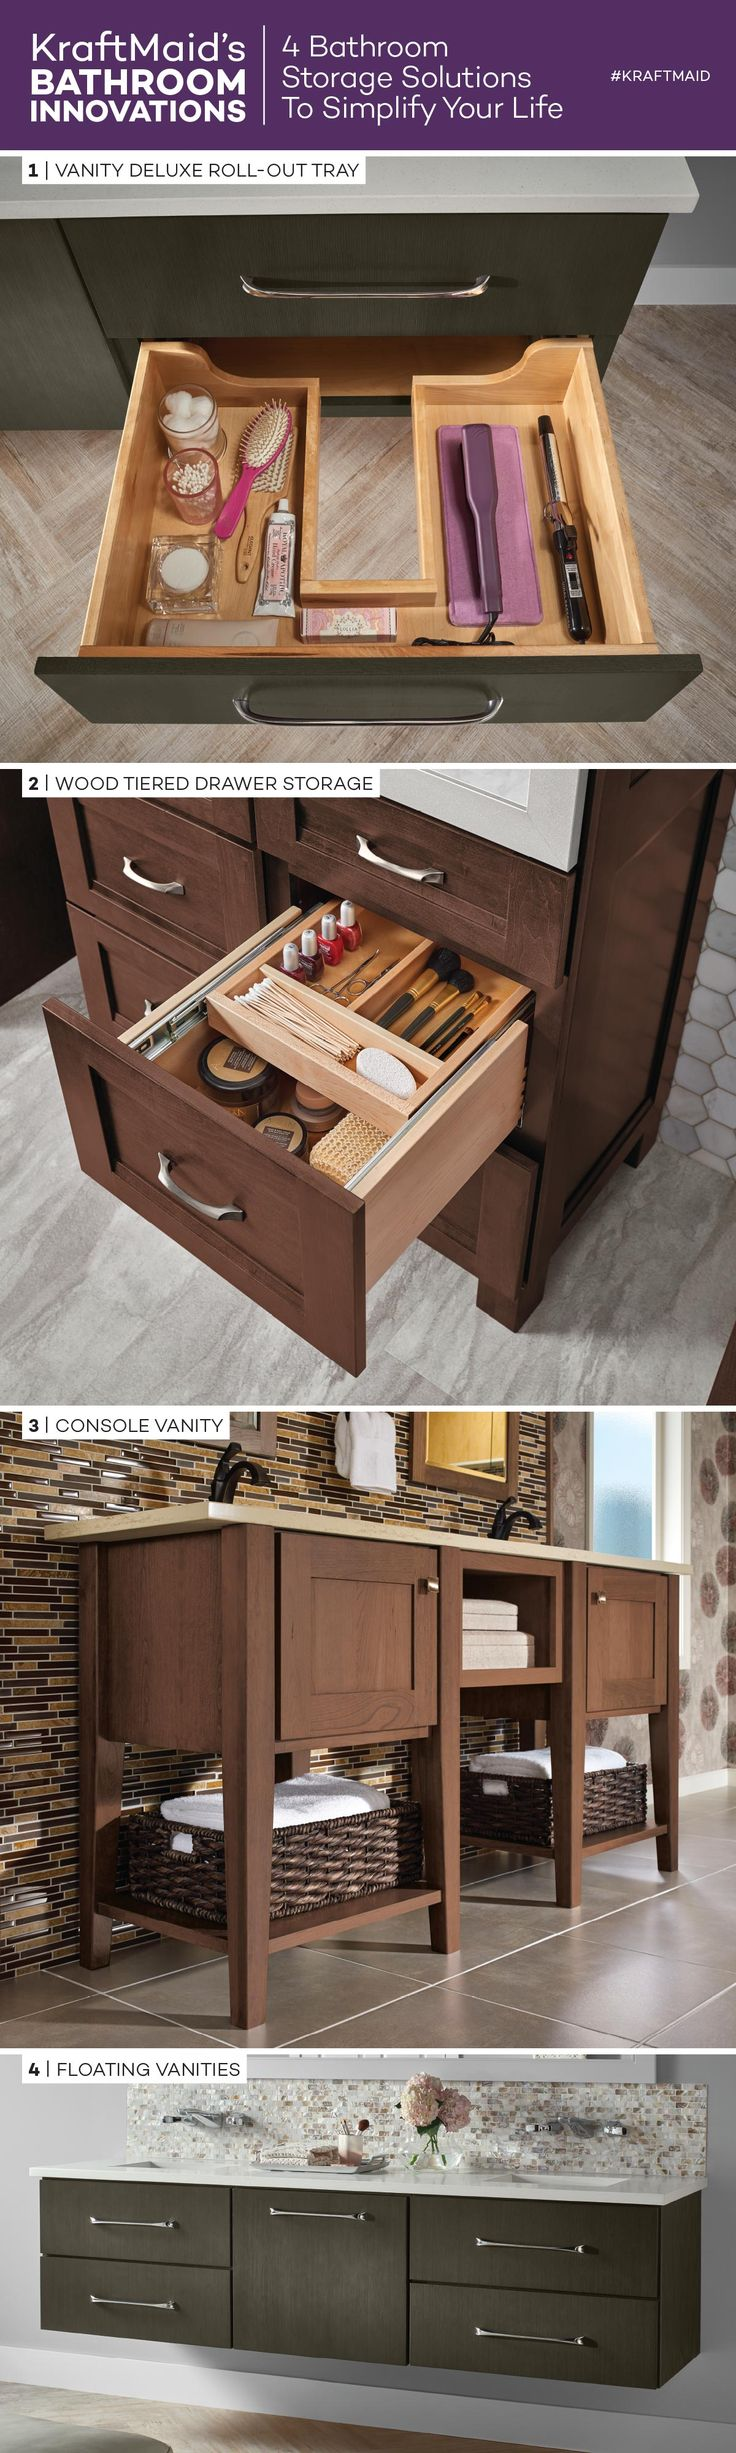 26 Best Kraftmaid Kitchen Amp Bath Storage Ideas Images On